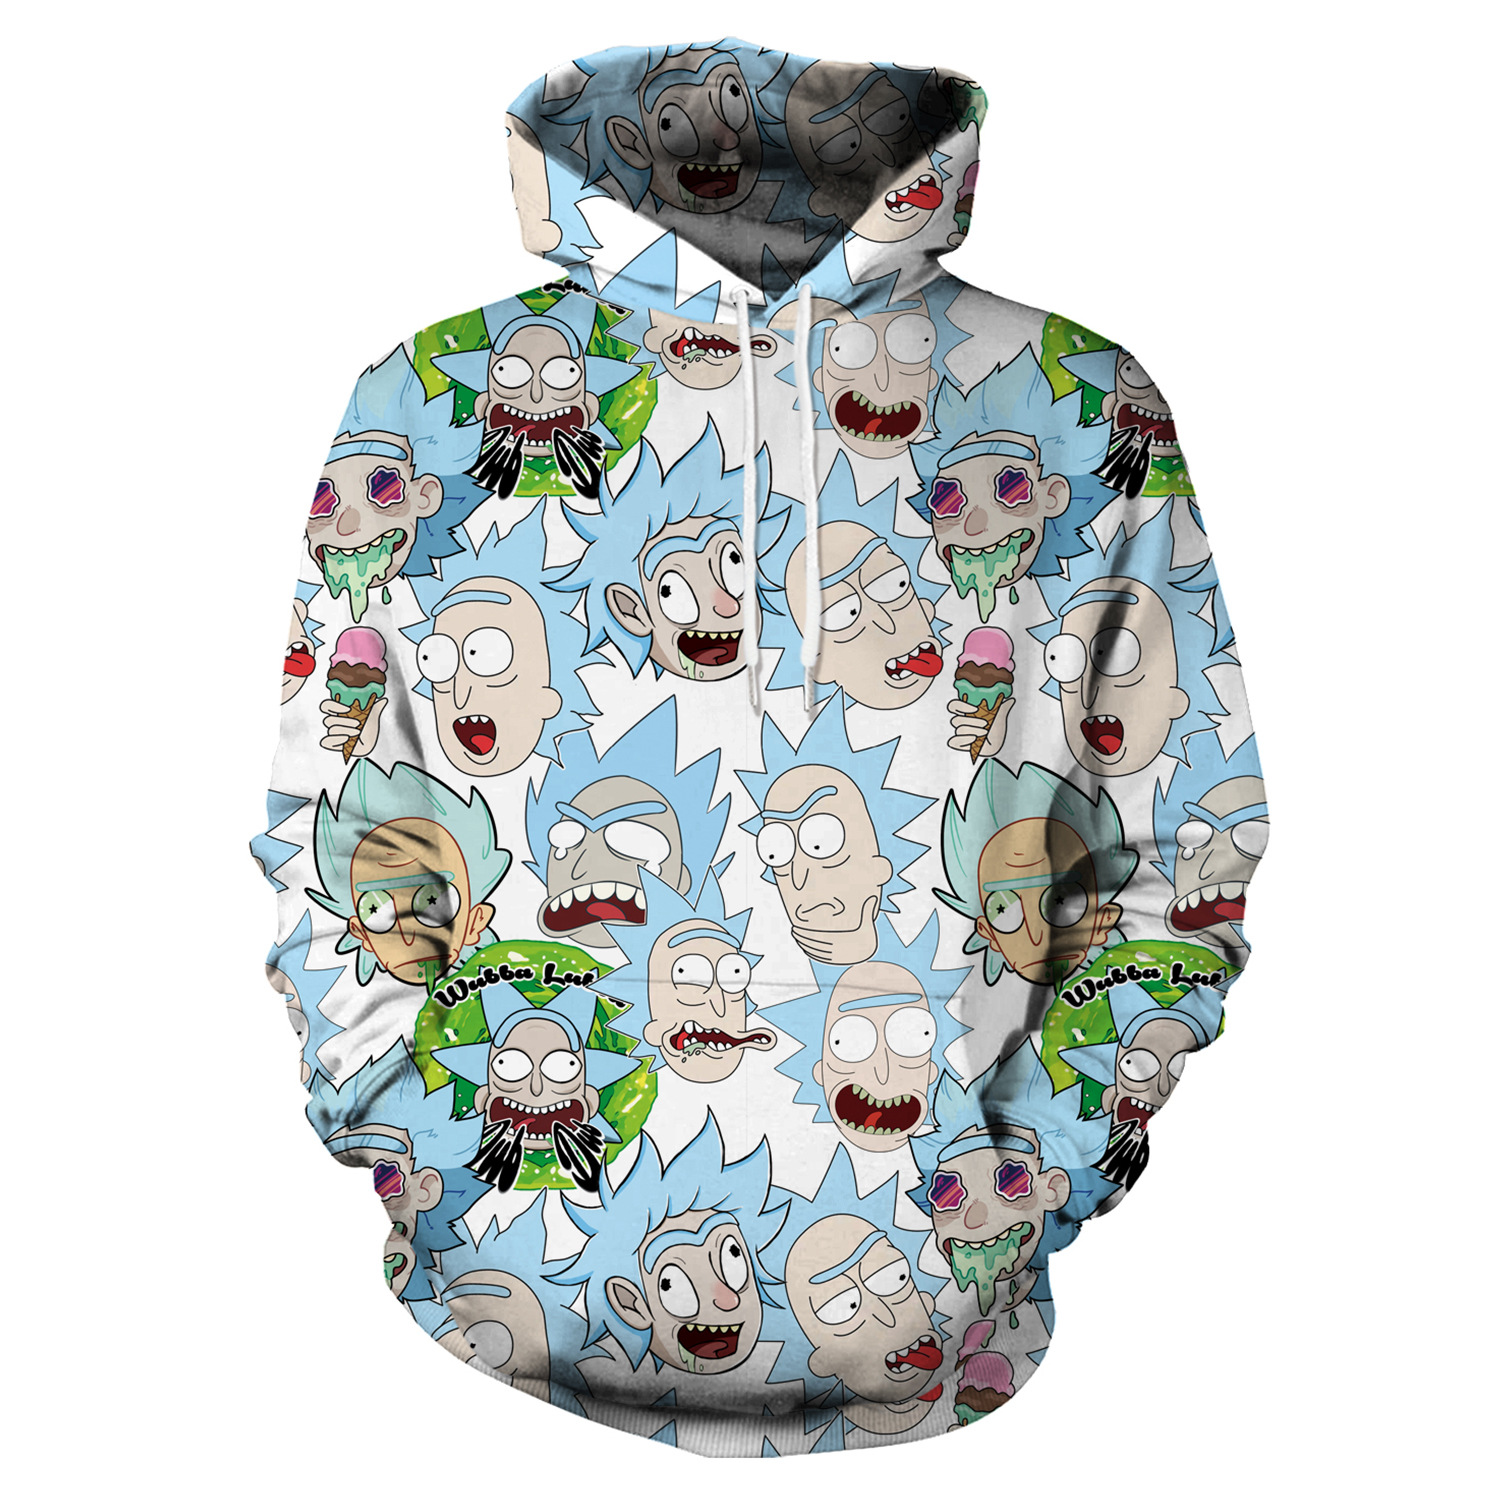 Hoodies Anime Rick and Morty 3D Print Hoodies with Hat Men Hoodie Loose Hooded Sweatshirt Sudaderas Para Hombre Streetwear